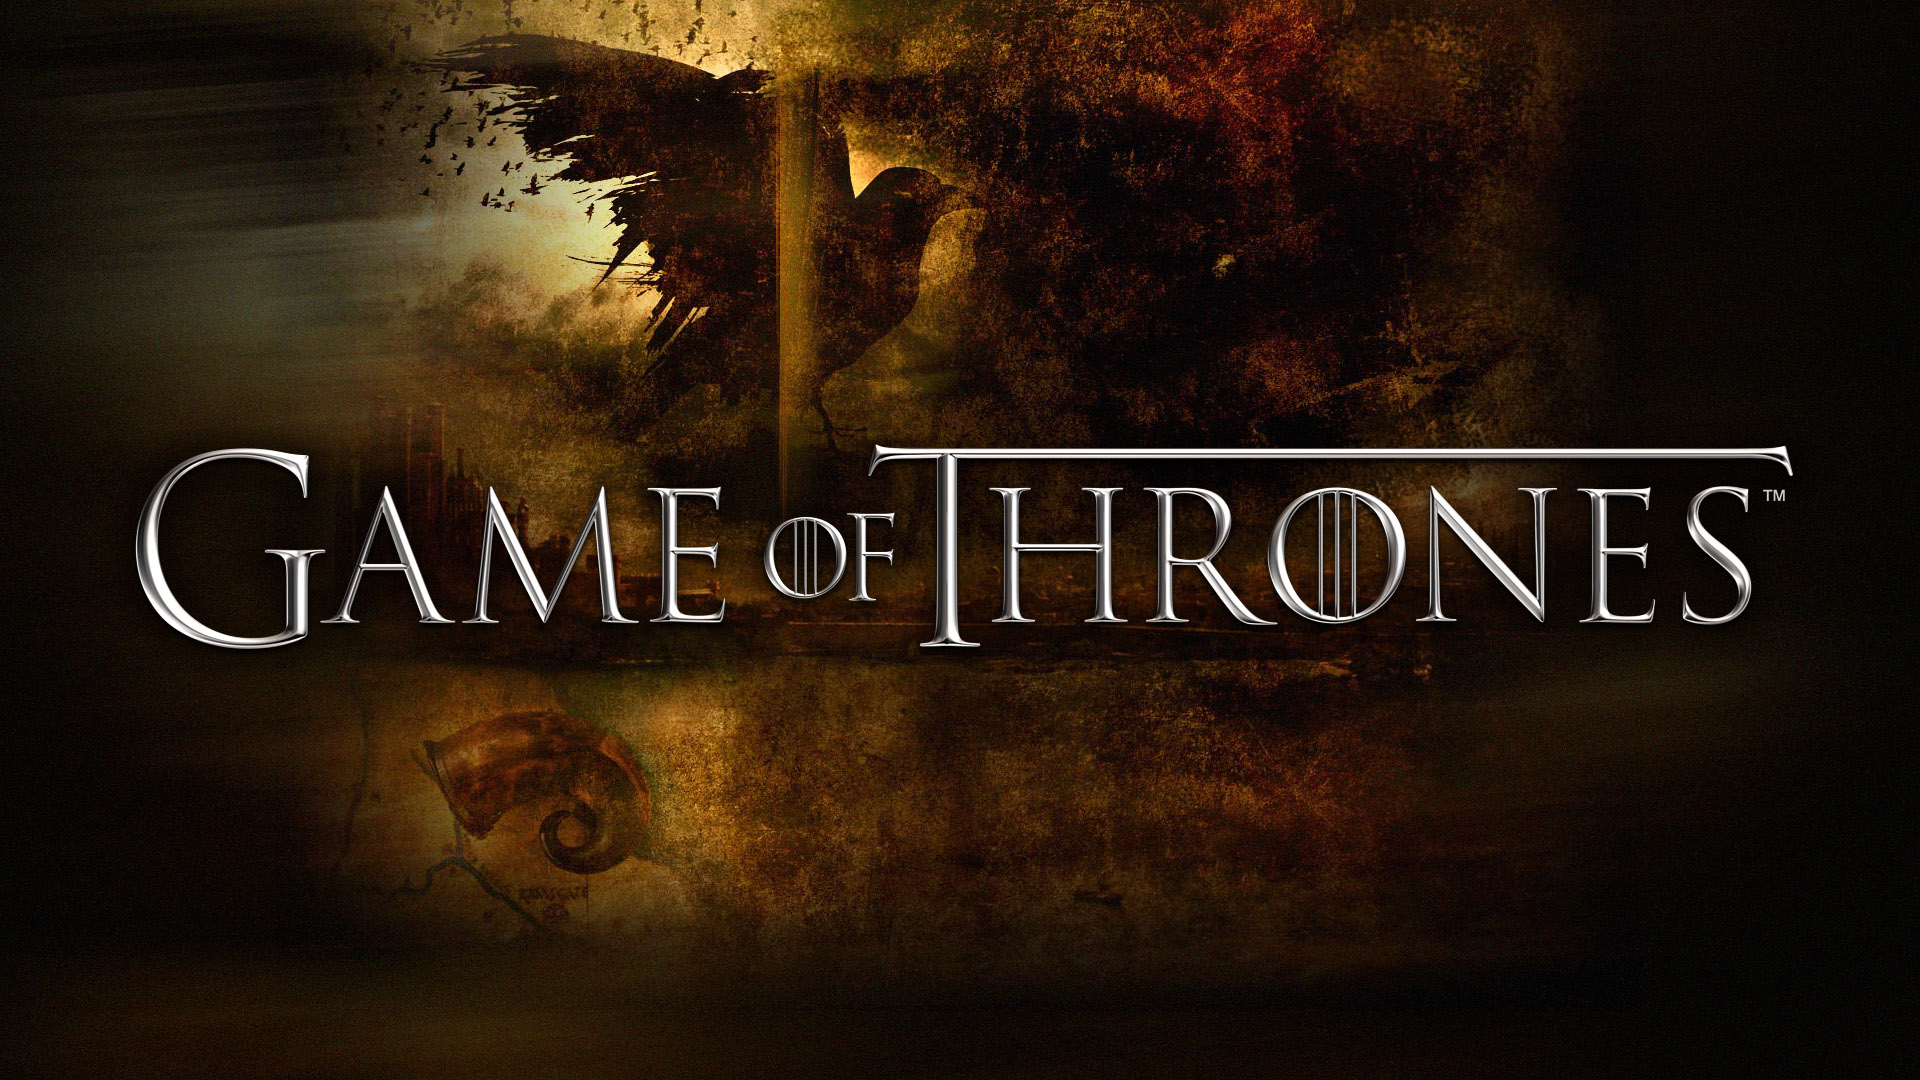 India is remaking Game of Thrones: Here's what we know - Winter is ...